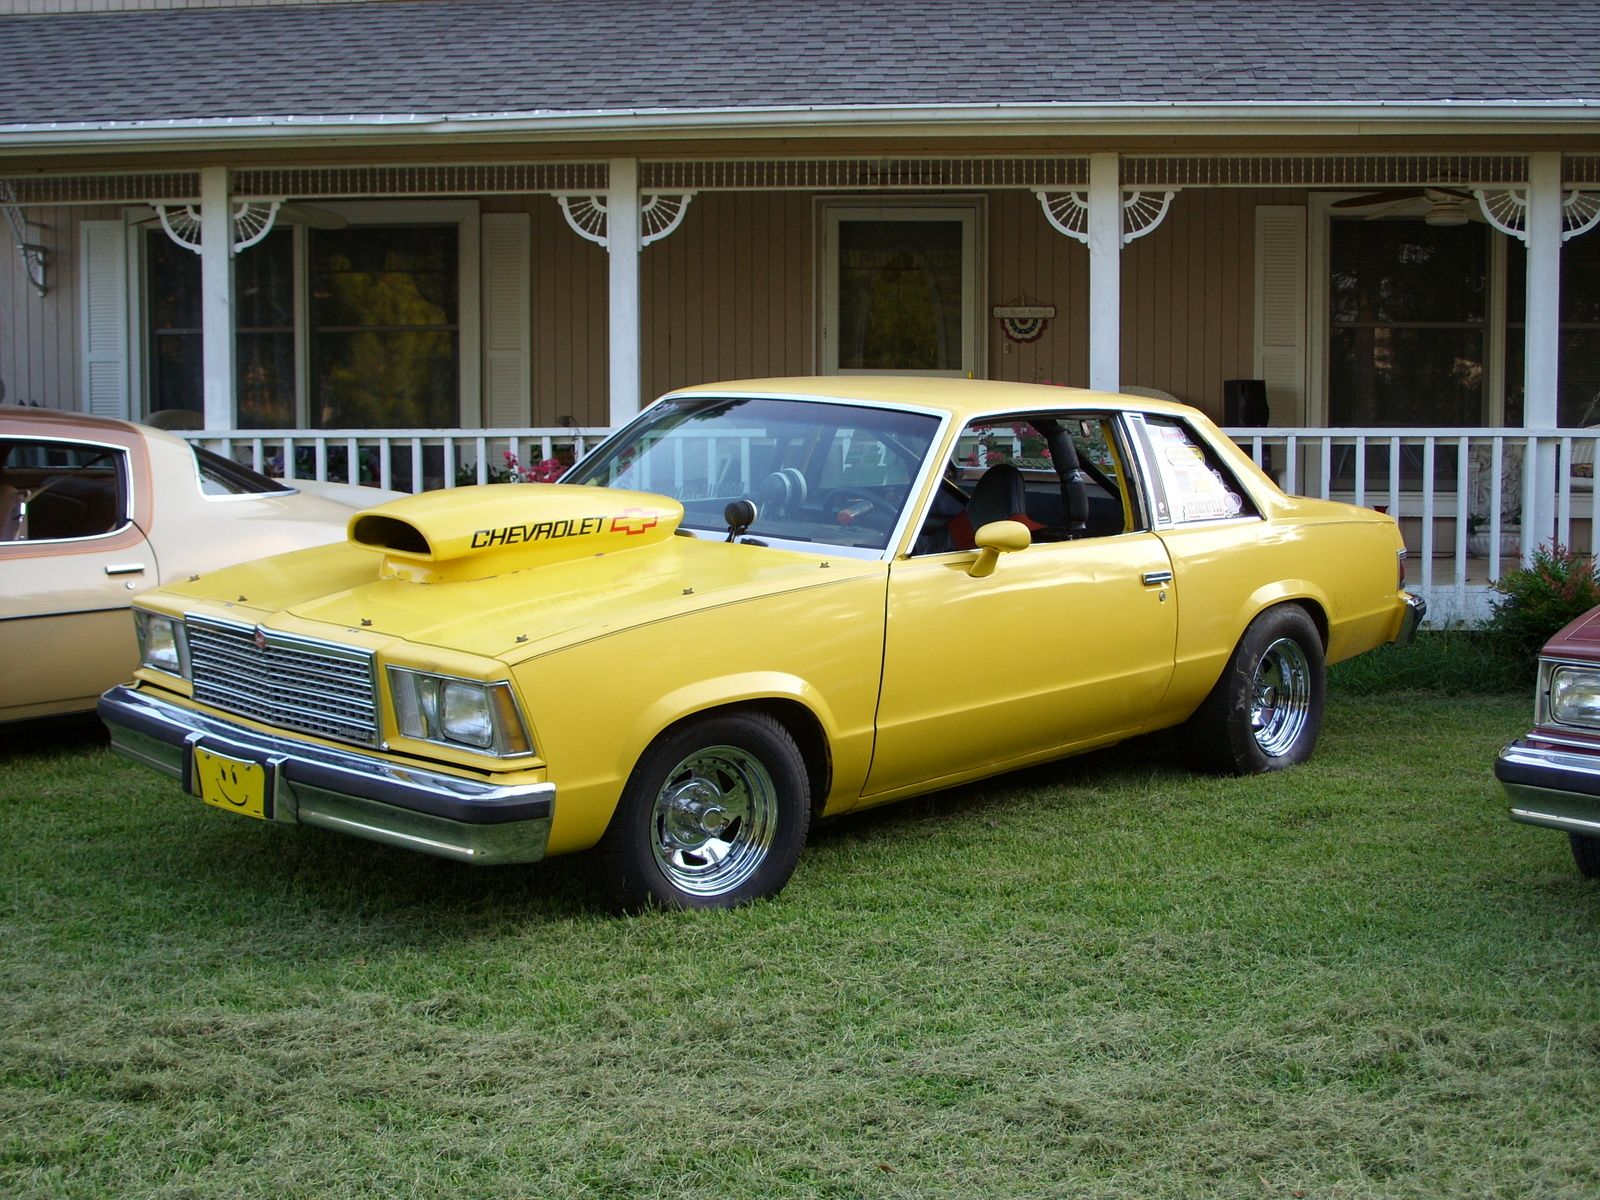 1980 chevy malibu 1979 chevrolet malibu picture exterior chevelles and novas pinterest. Black Bedroom Furniture Sets. Home Design Ideas